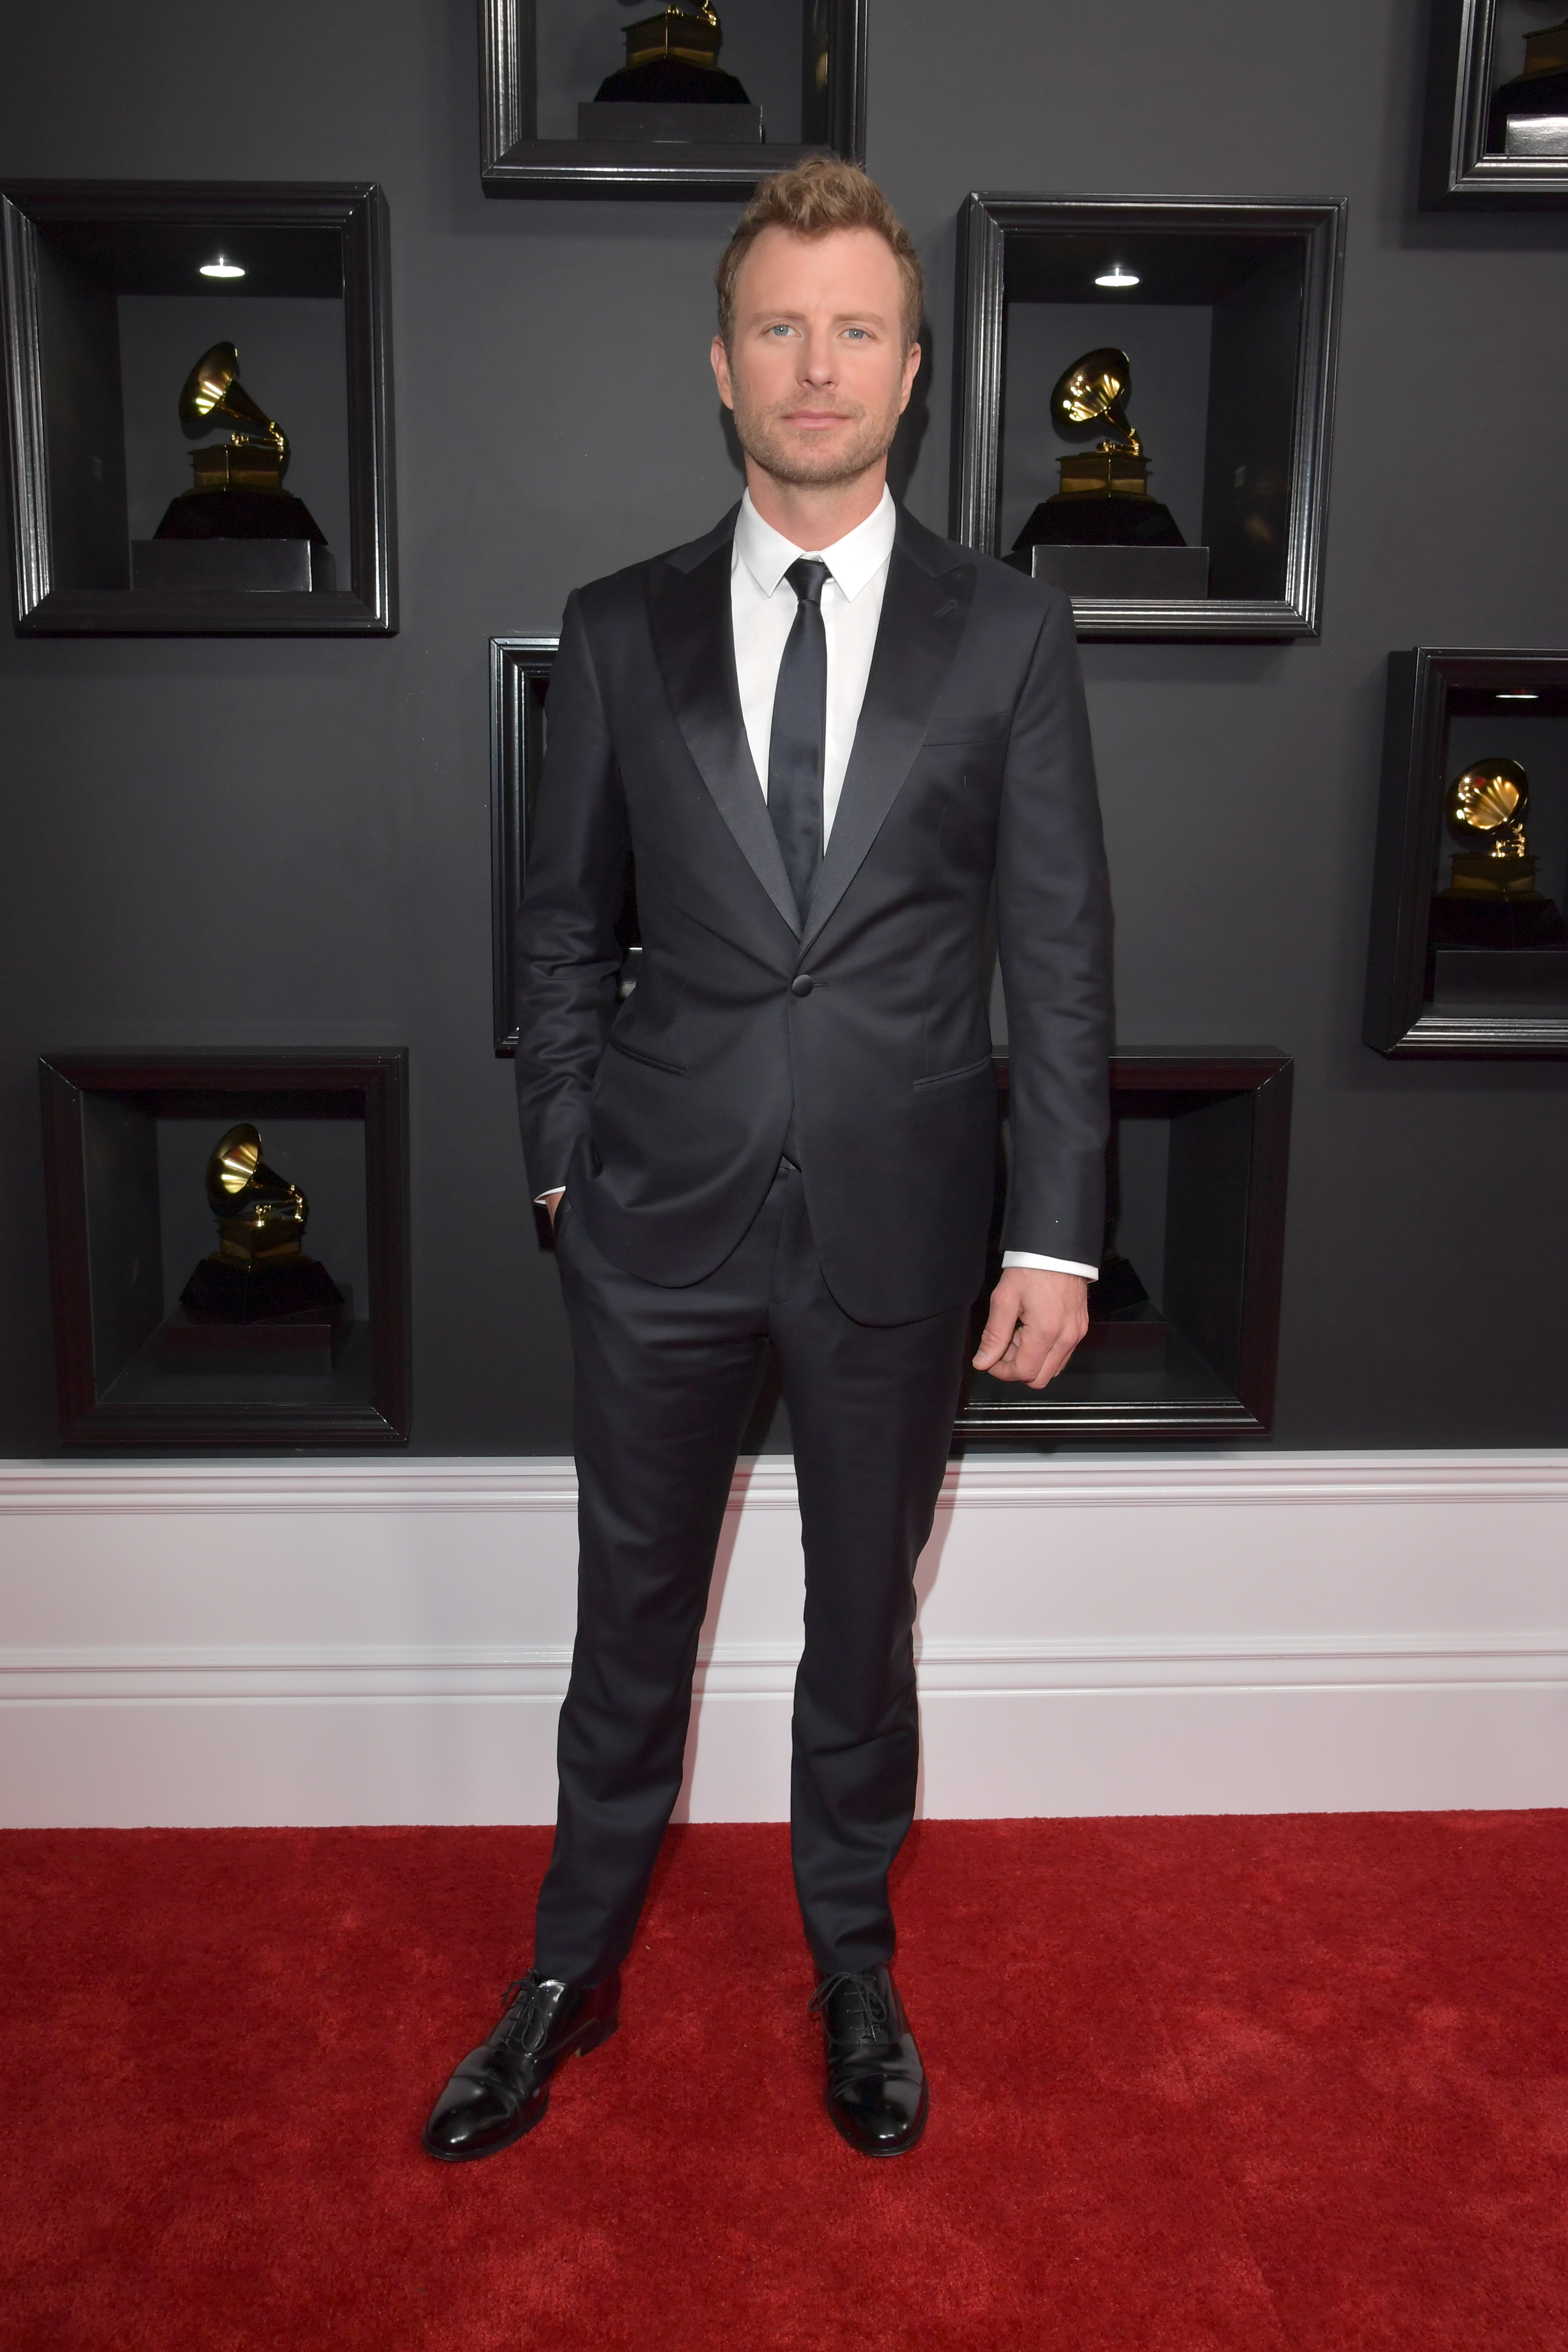 Dierks Bentley attends The 59th GRAMMY Awards; Photo by Lester Cohen/WireImage